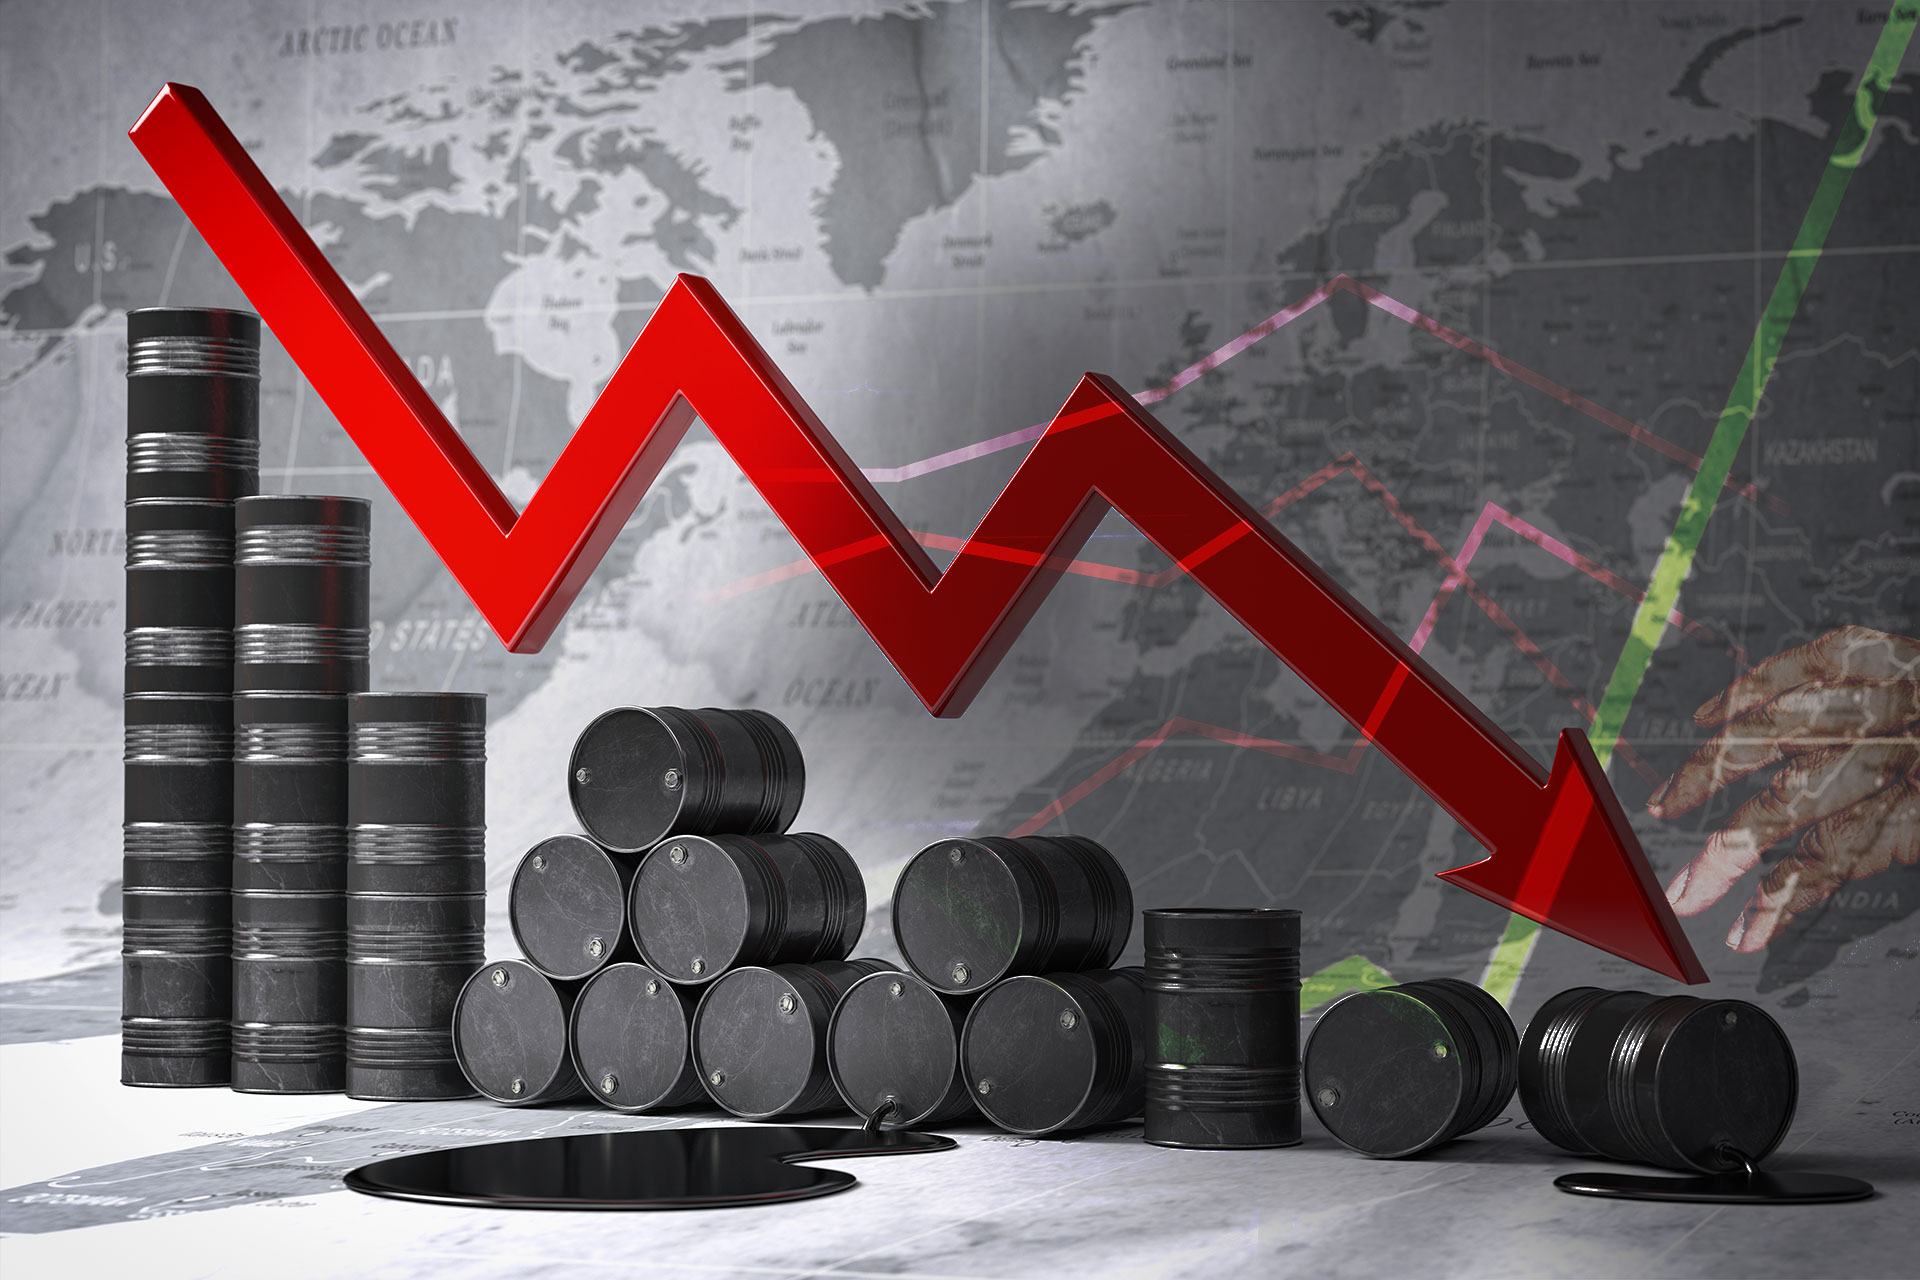 Crisis in oil and petroleum industry. Oil barrels and falling graph on world map background. Oil price or production decrease concept. Green line moving up placed over top.